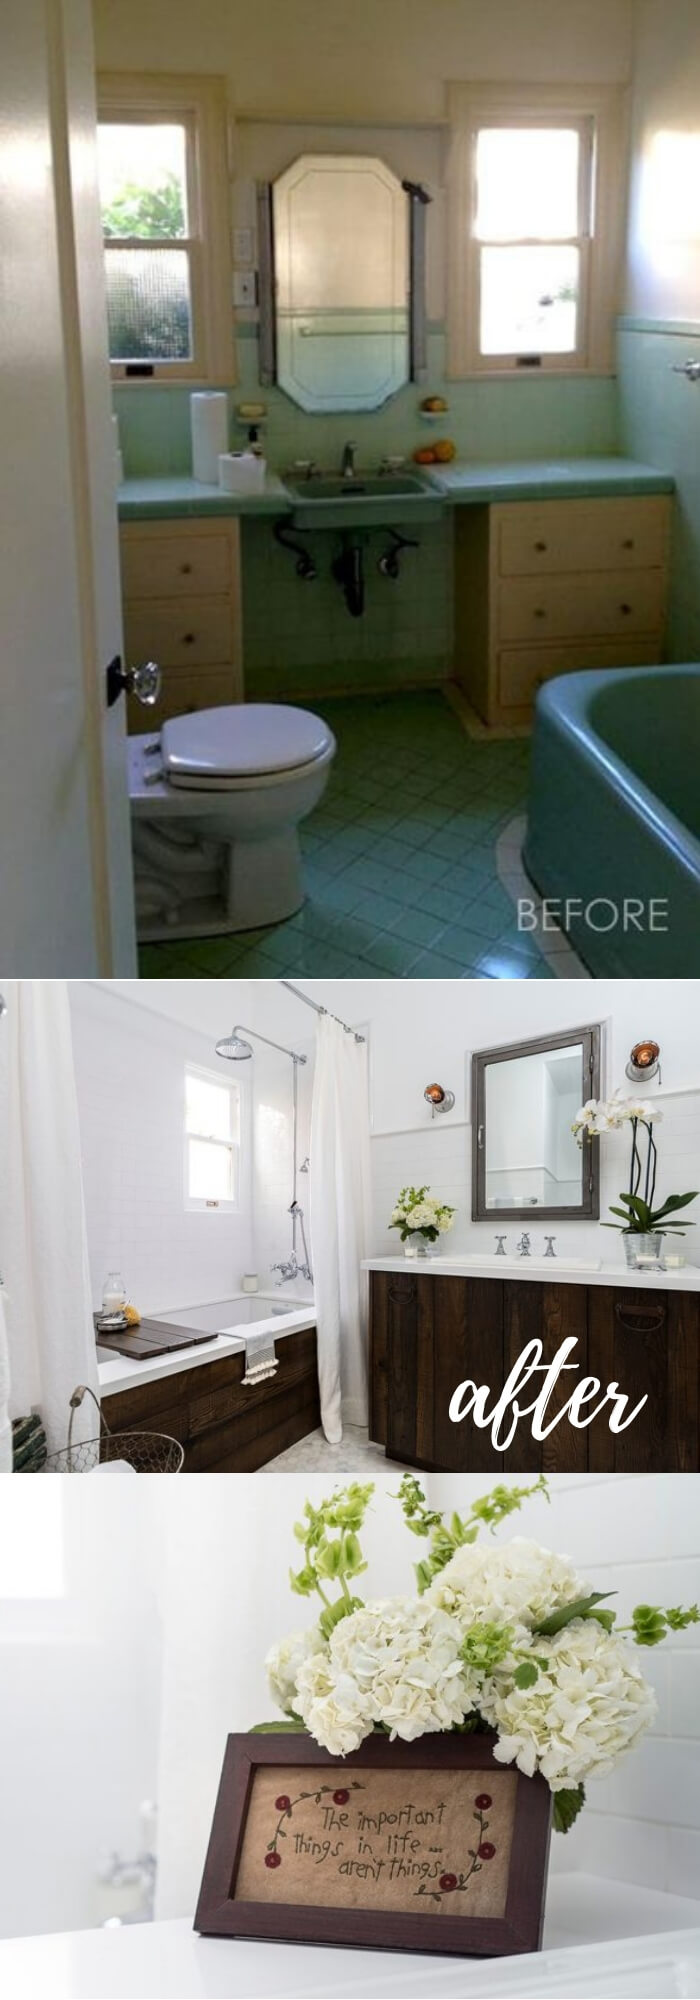 Remodel old Hollywood style